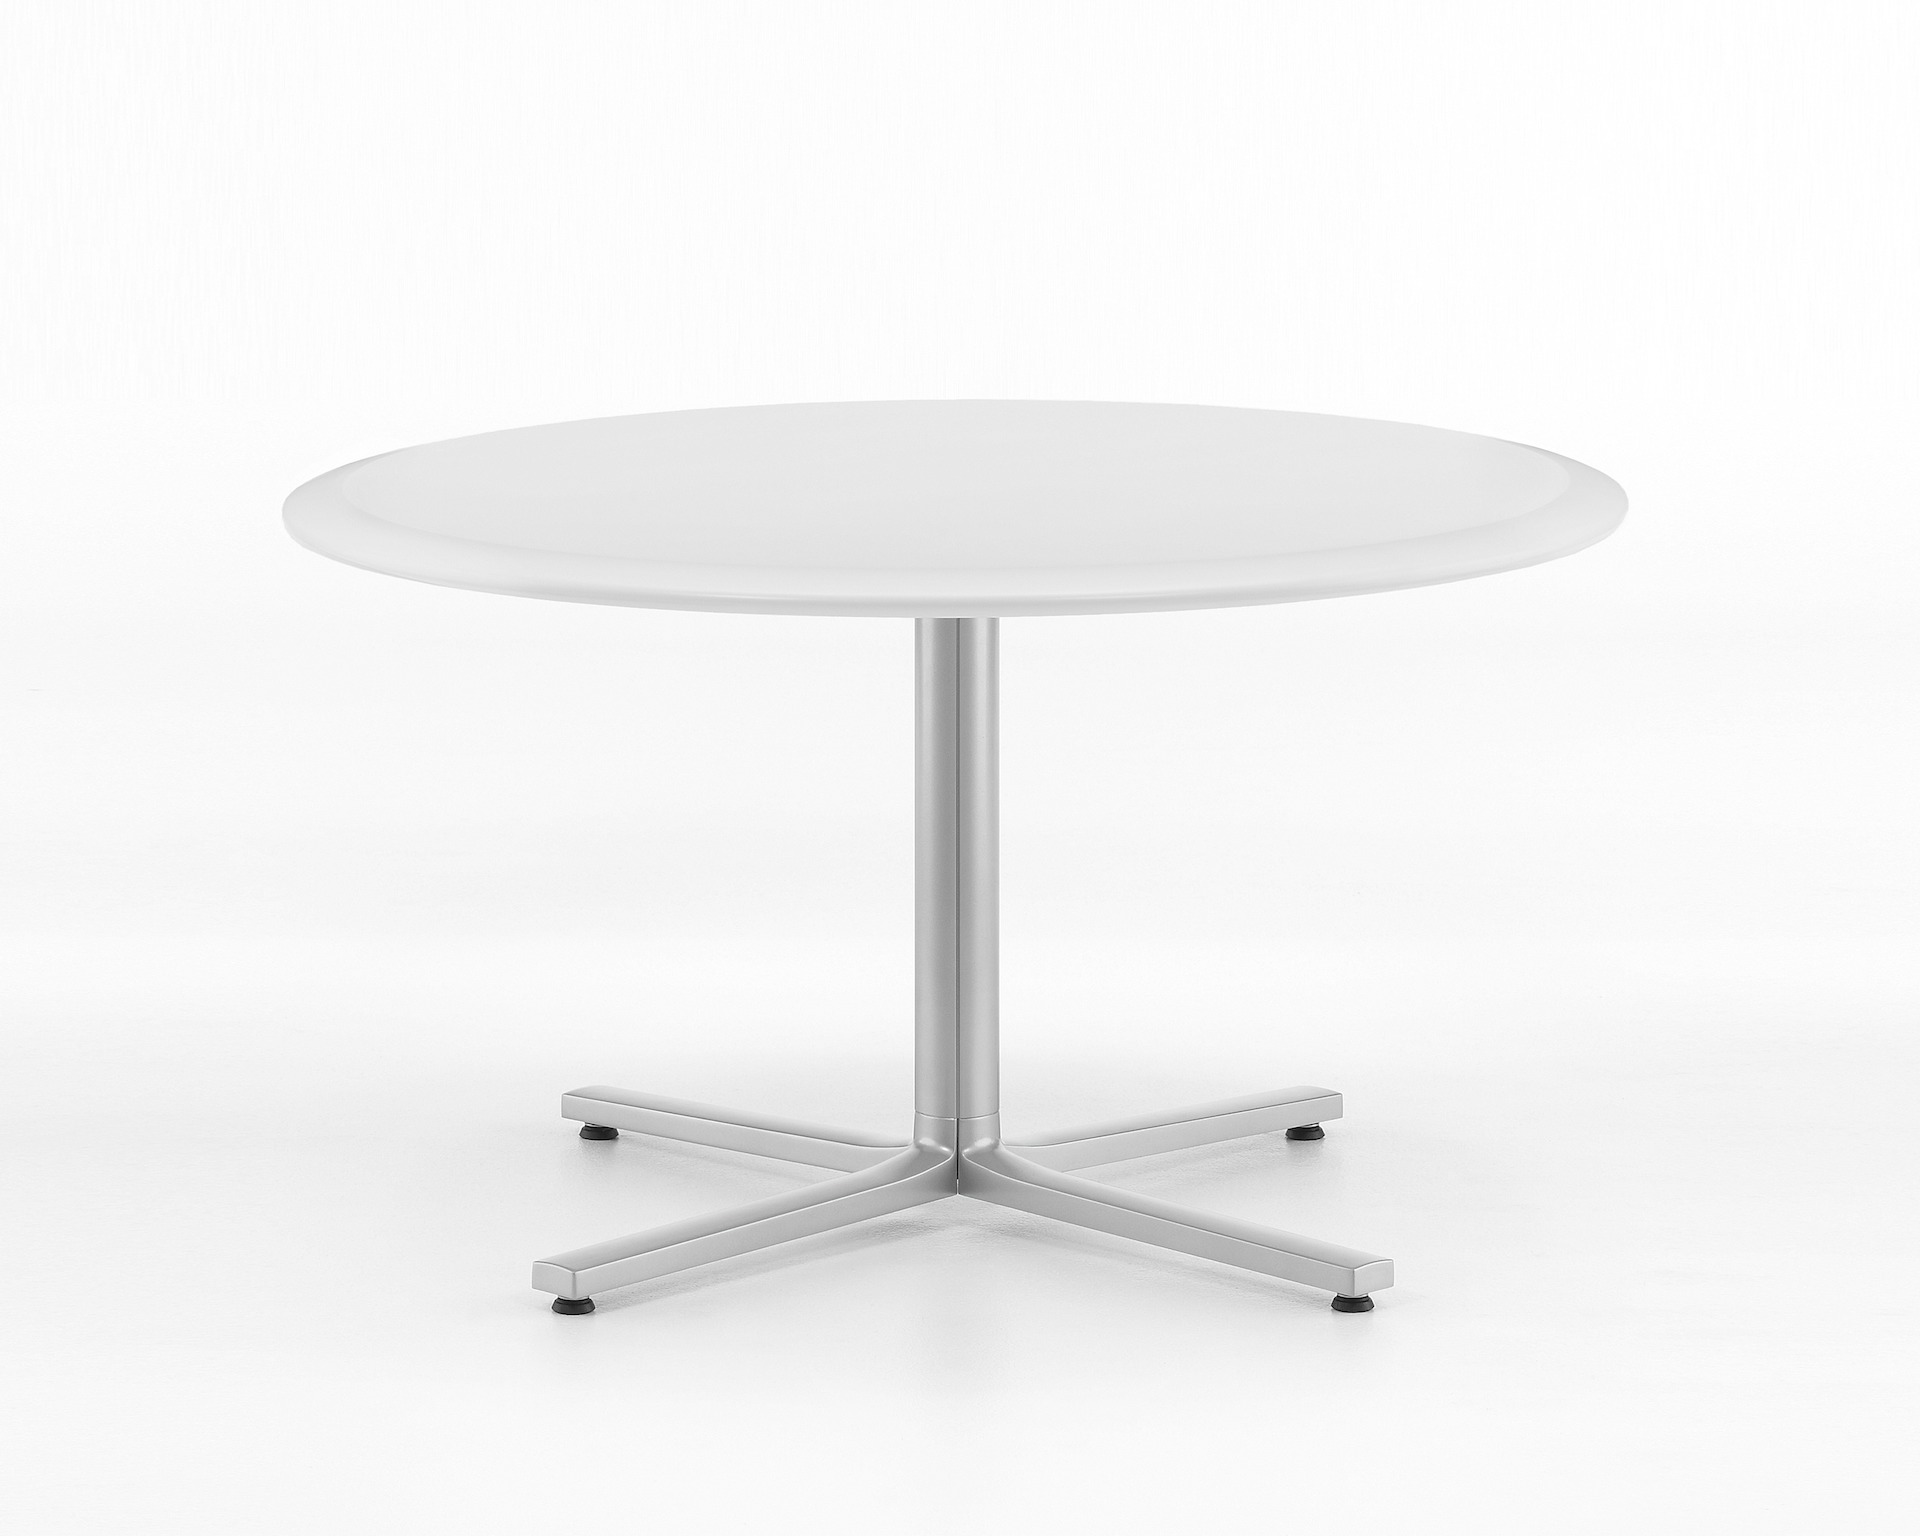 everywhere tables product images collaborative furniture herman rh hermanmiller com herman miller everywhere table round herman miller everywhere table chip chart